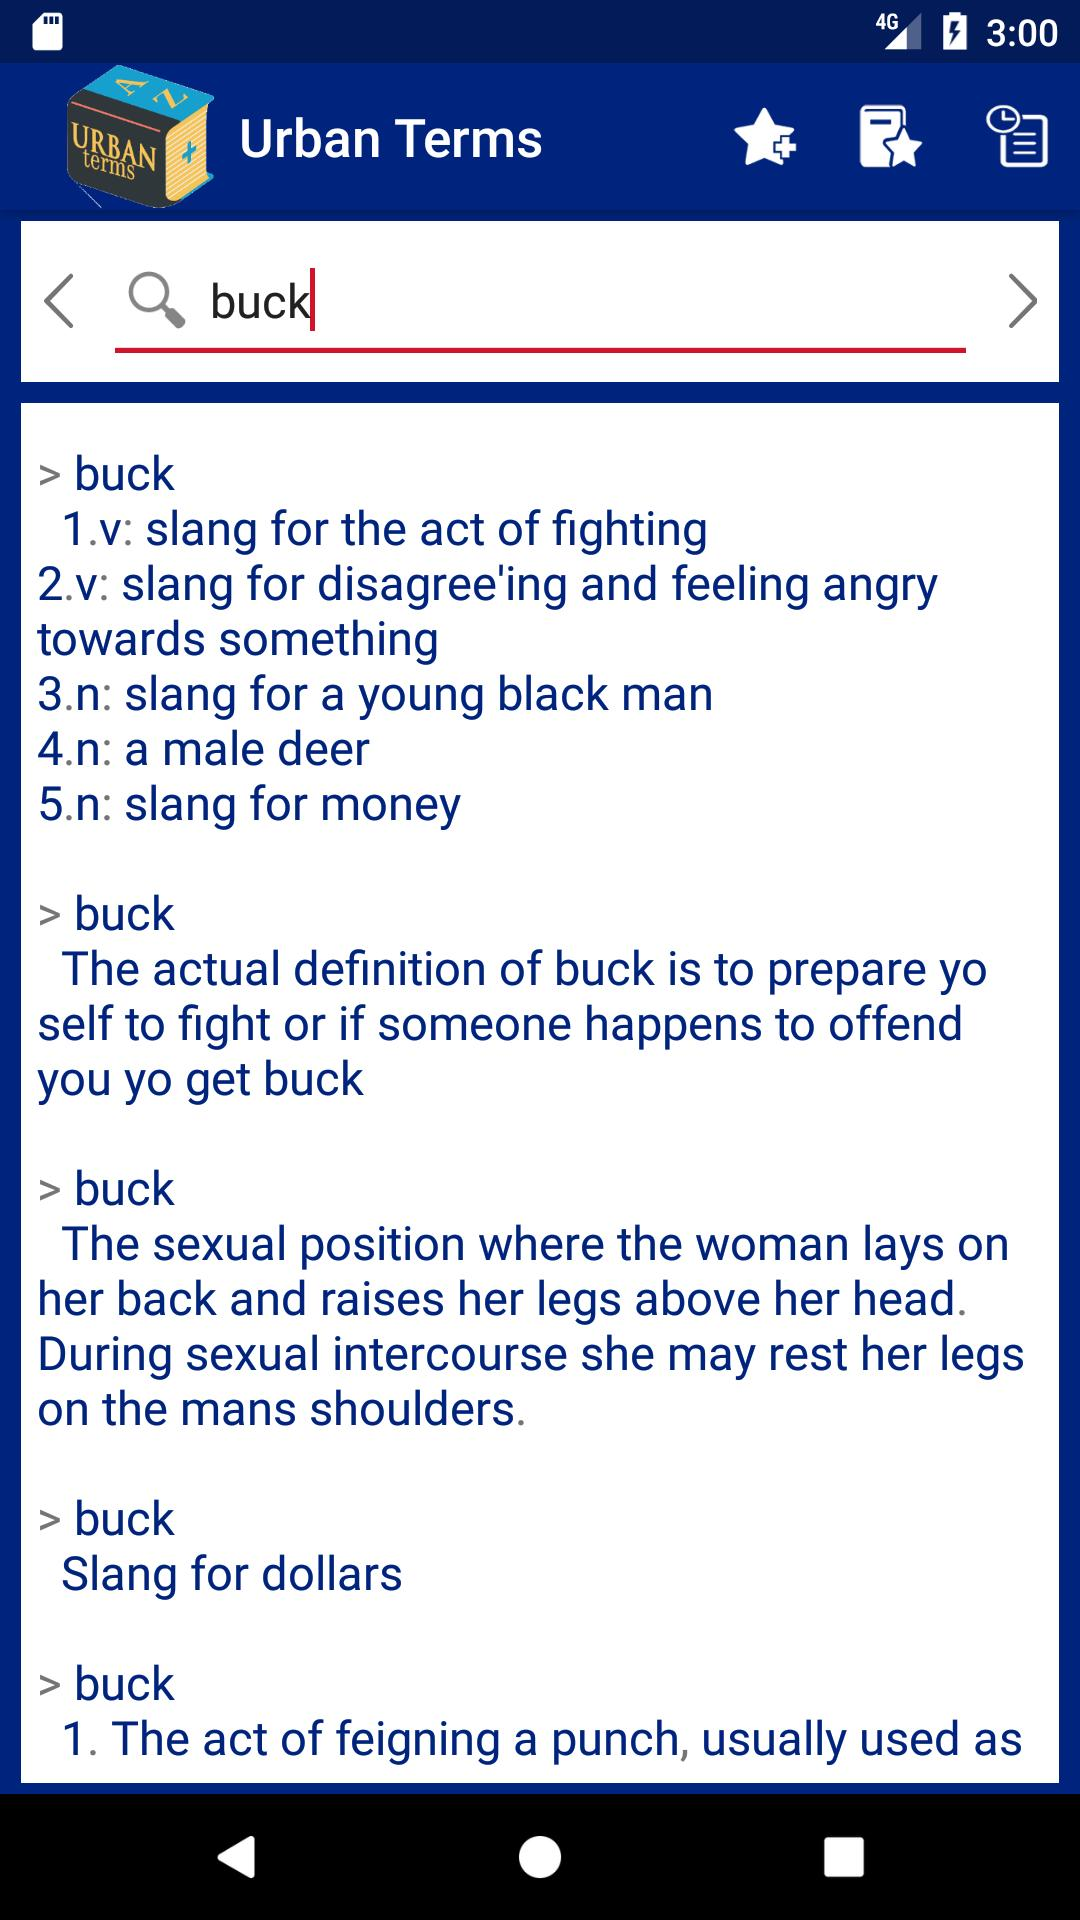 Urban slang words and meanings